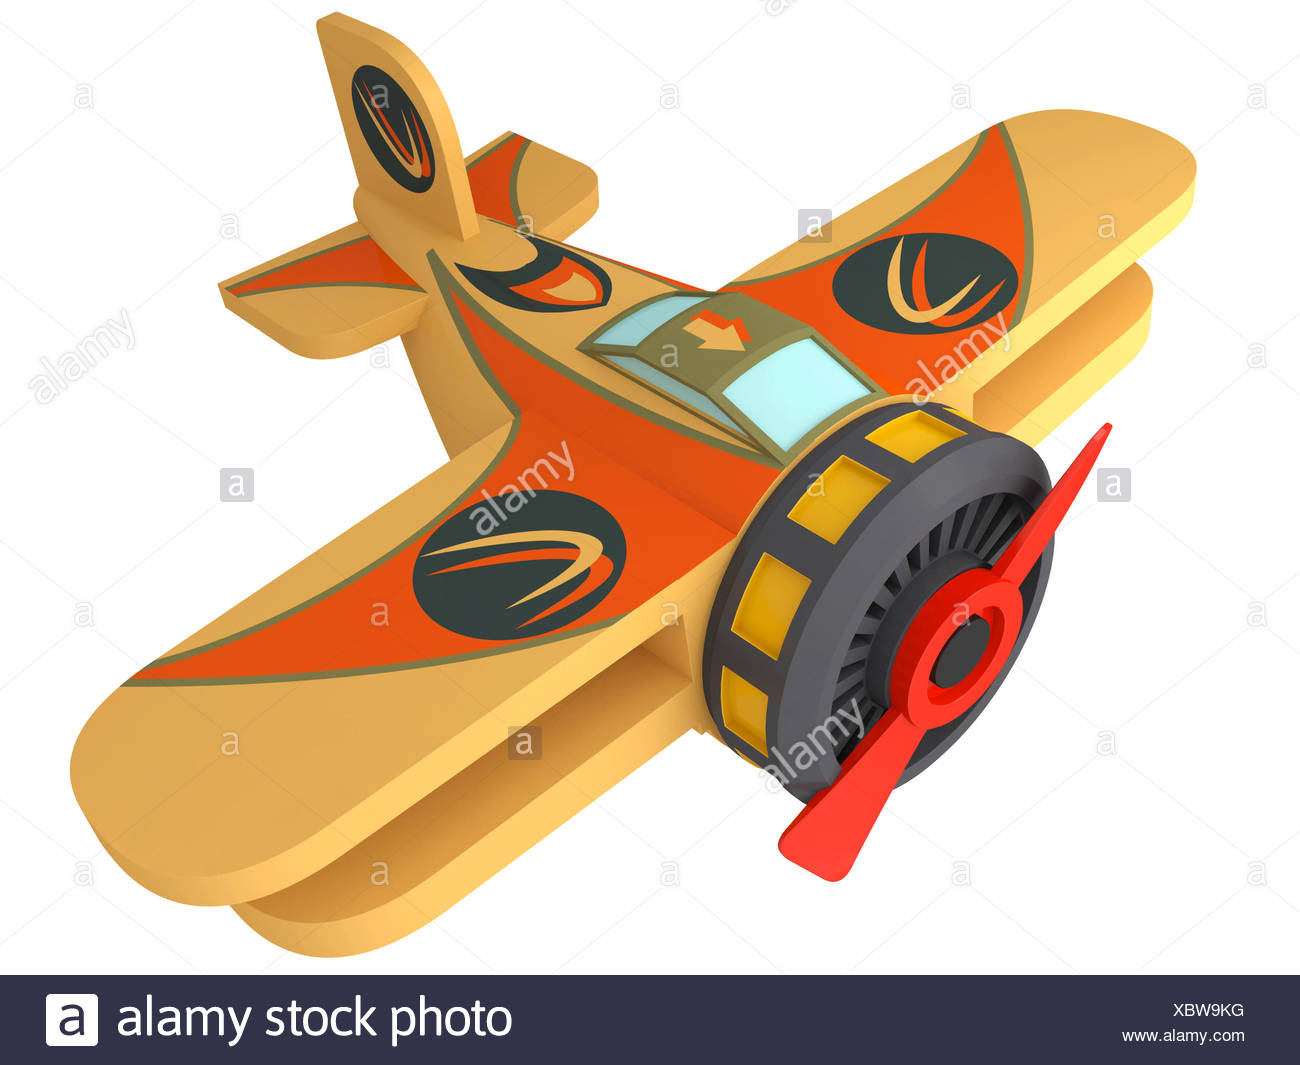 Model of the toy plane - Stock Image